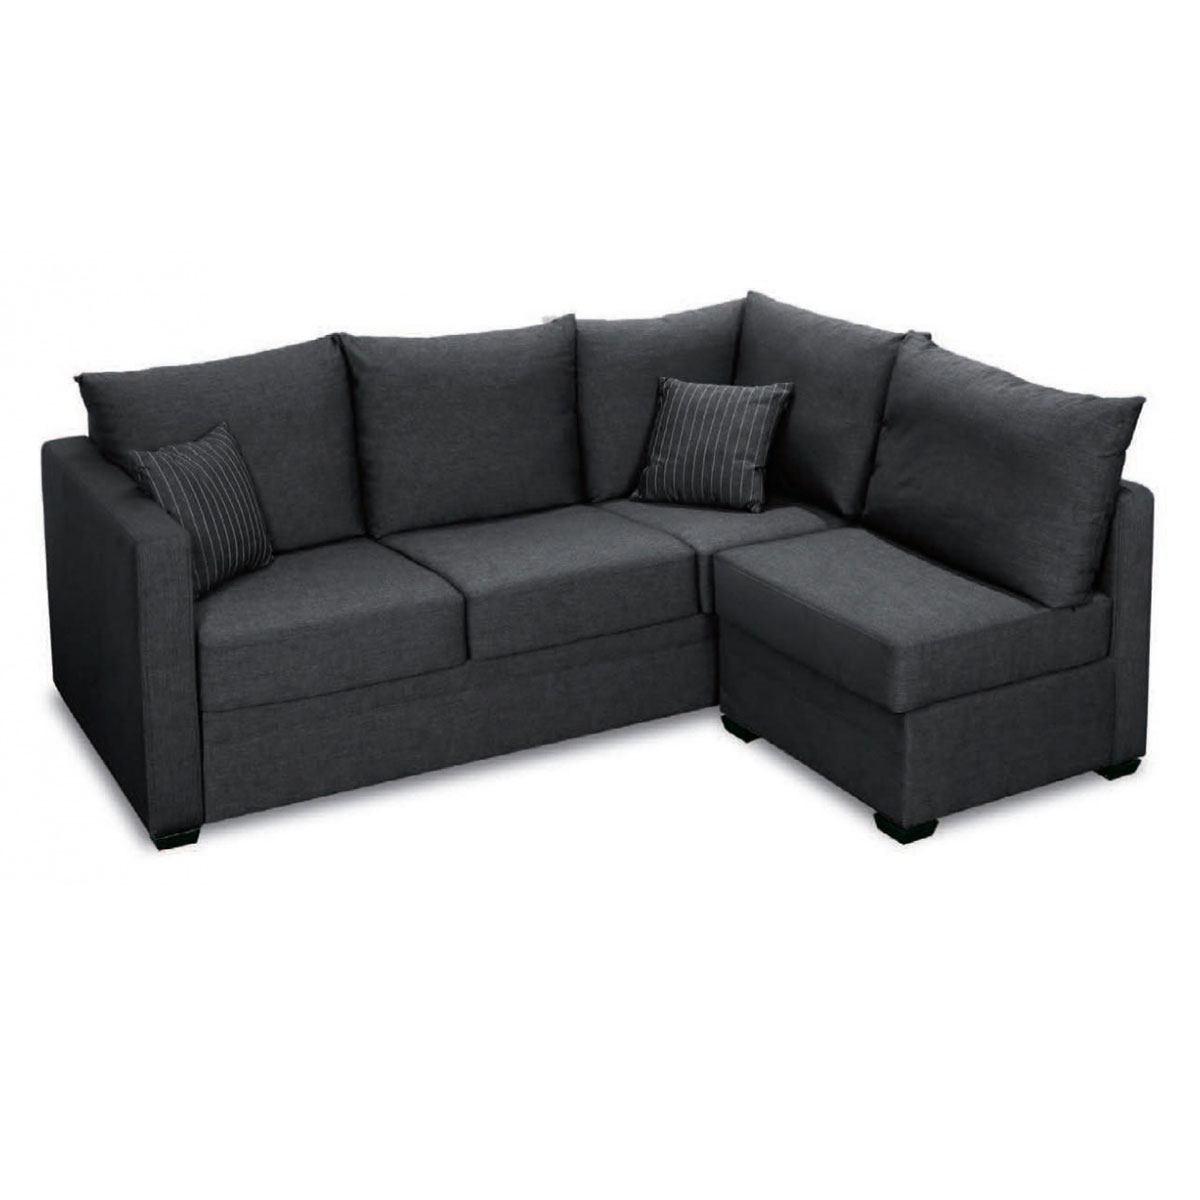 Canap convertible diva week end royal sofa id e de - Meuble dos de canape ...